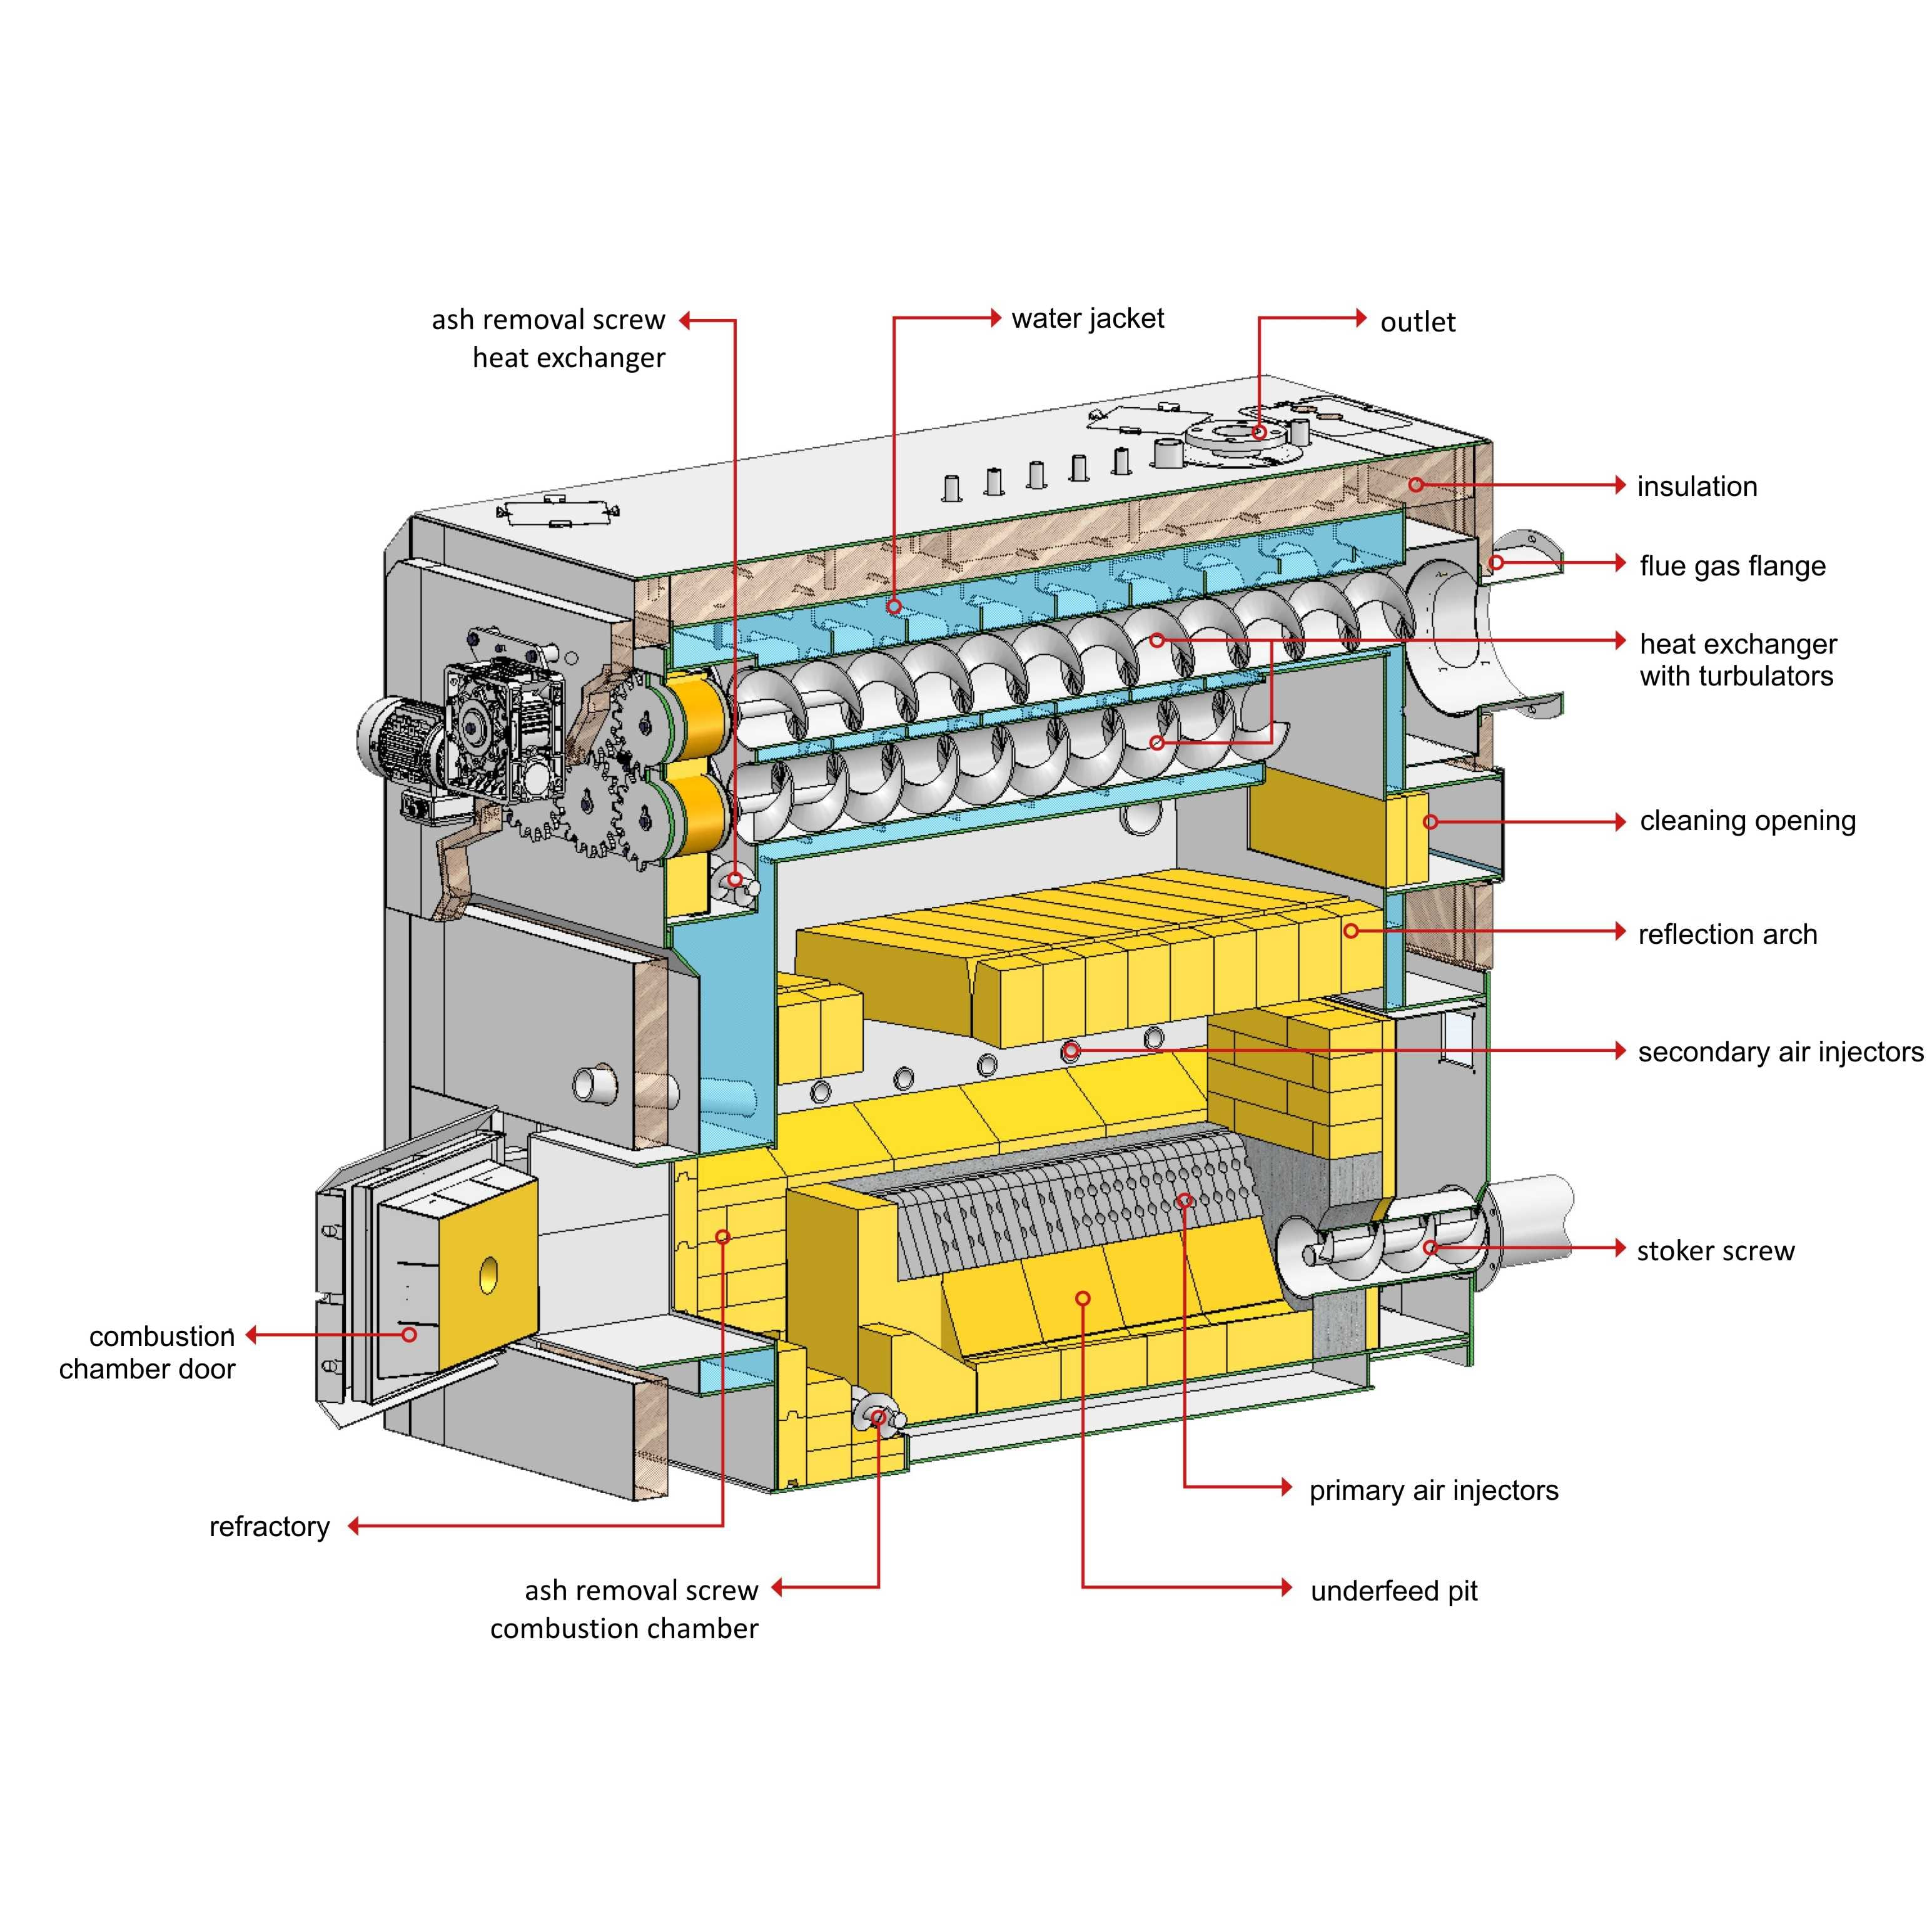 sectional image Underfeed Firing LCS-RU Nolting Holzfeuerungstechnik GmbH